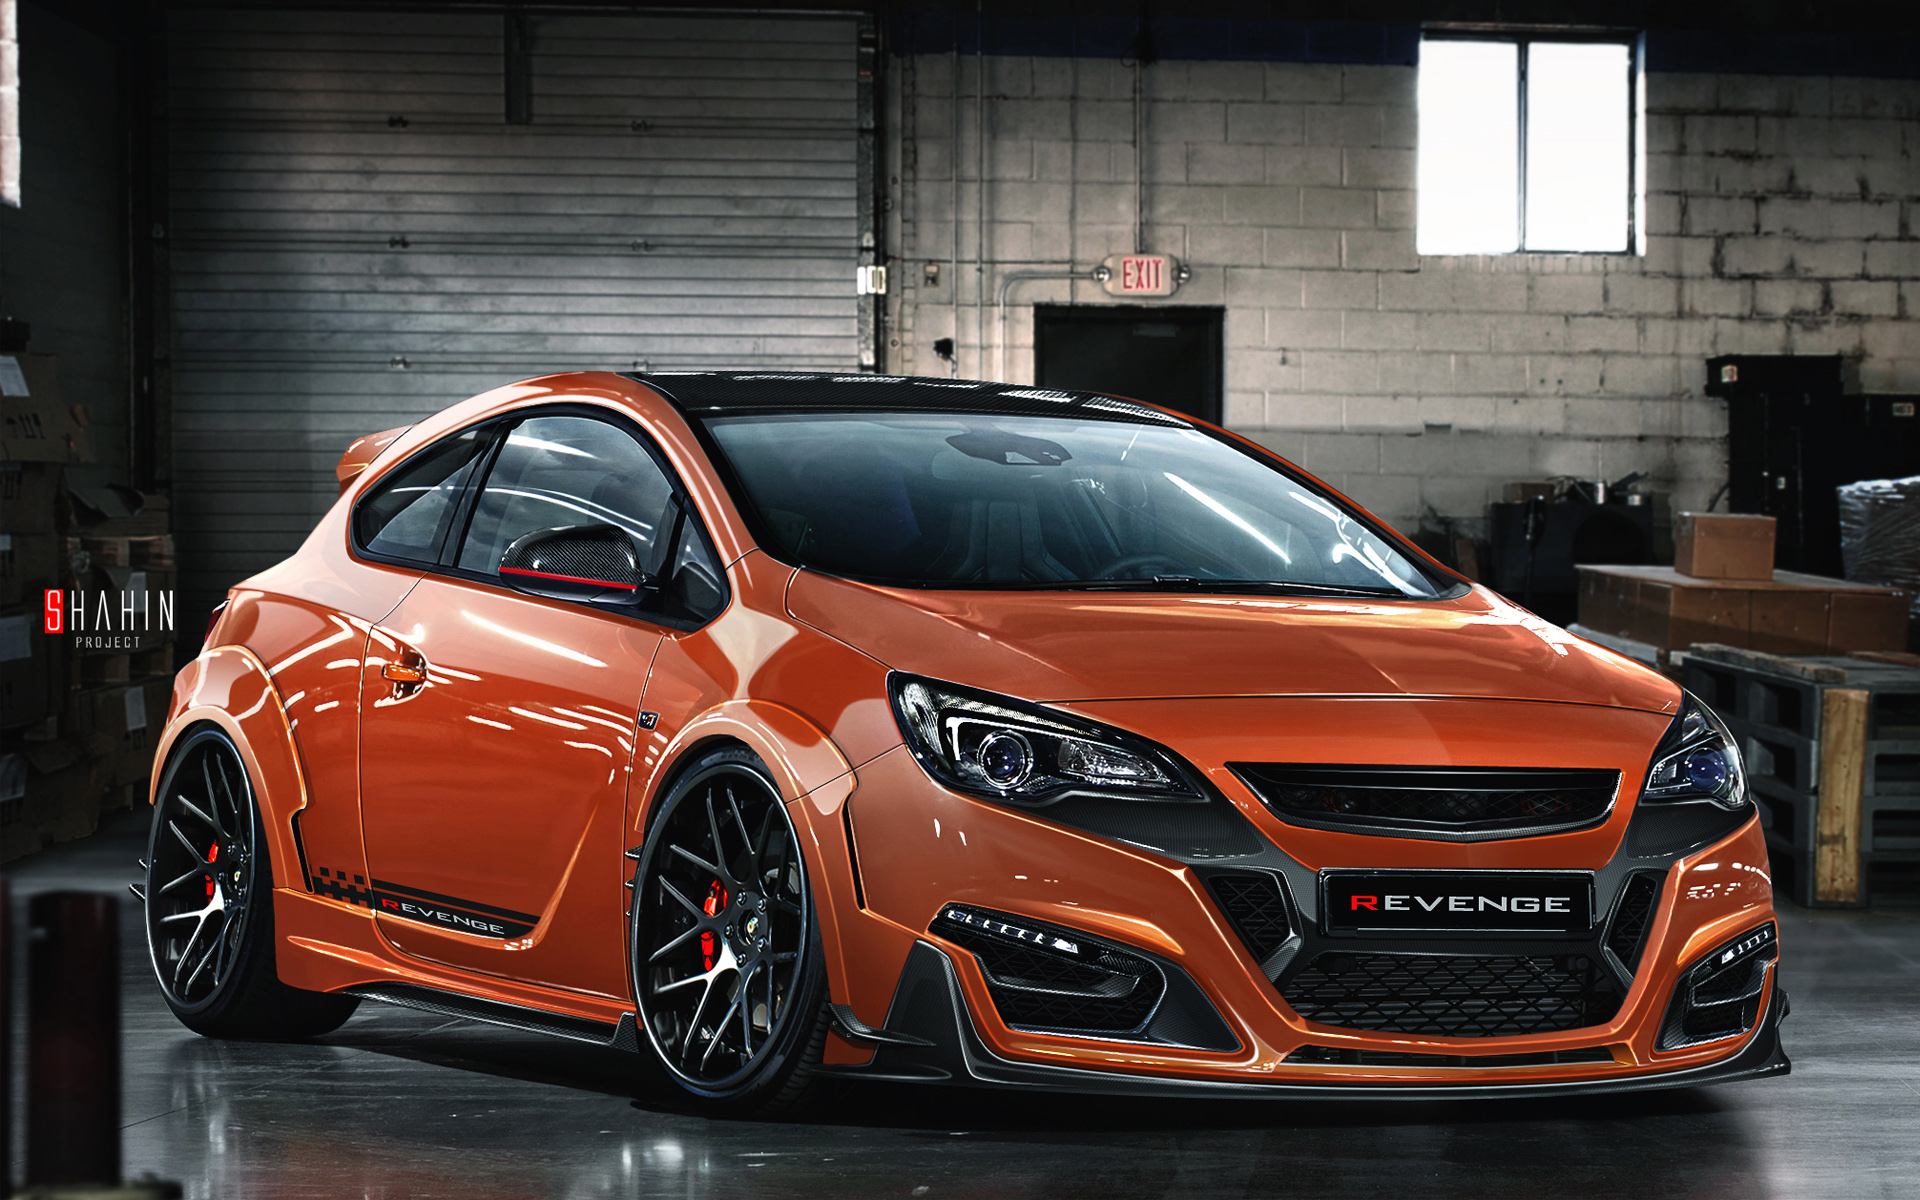 2015 opel astra gtc revenge wallpaper hd car wallpapers id 5605. Black Bedroom Furniture Sets. Home Design Ideas